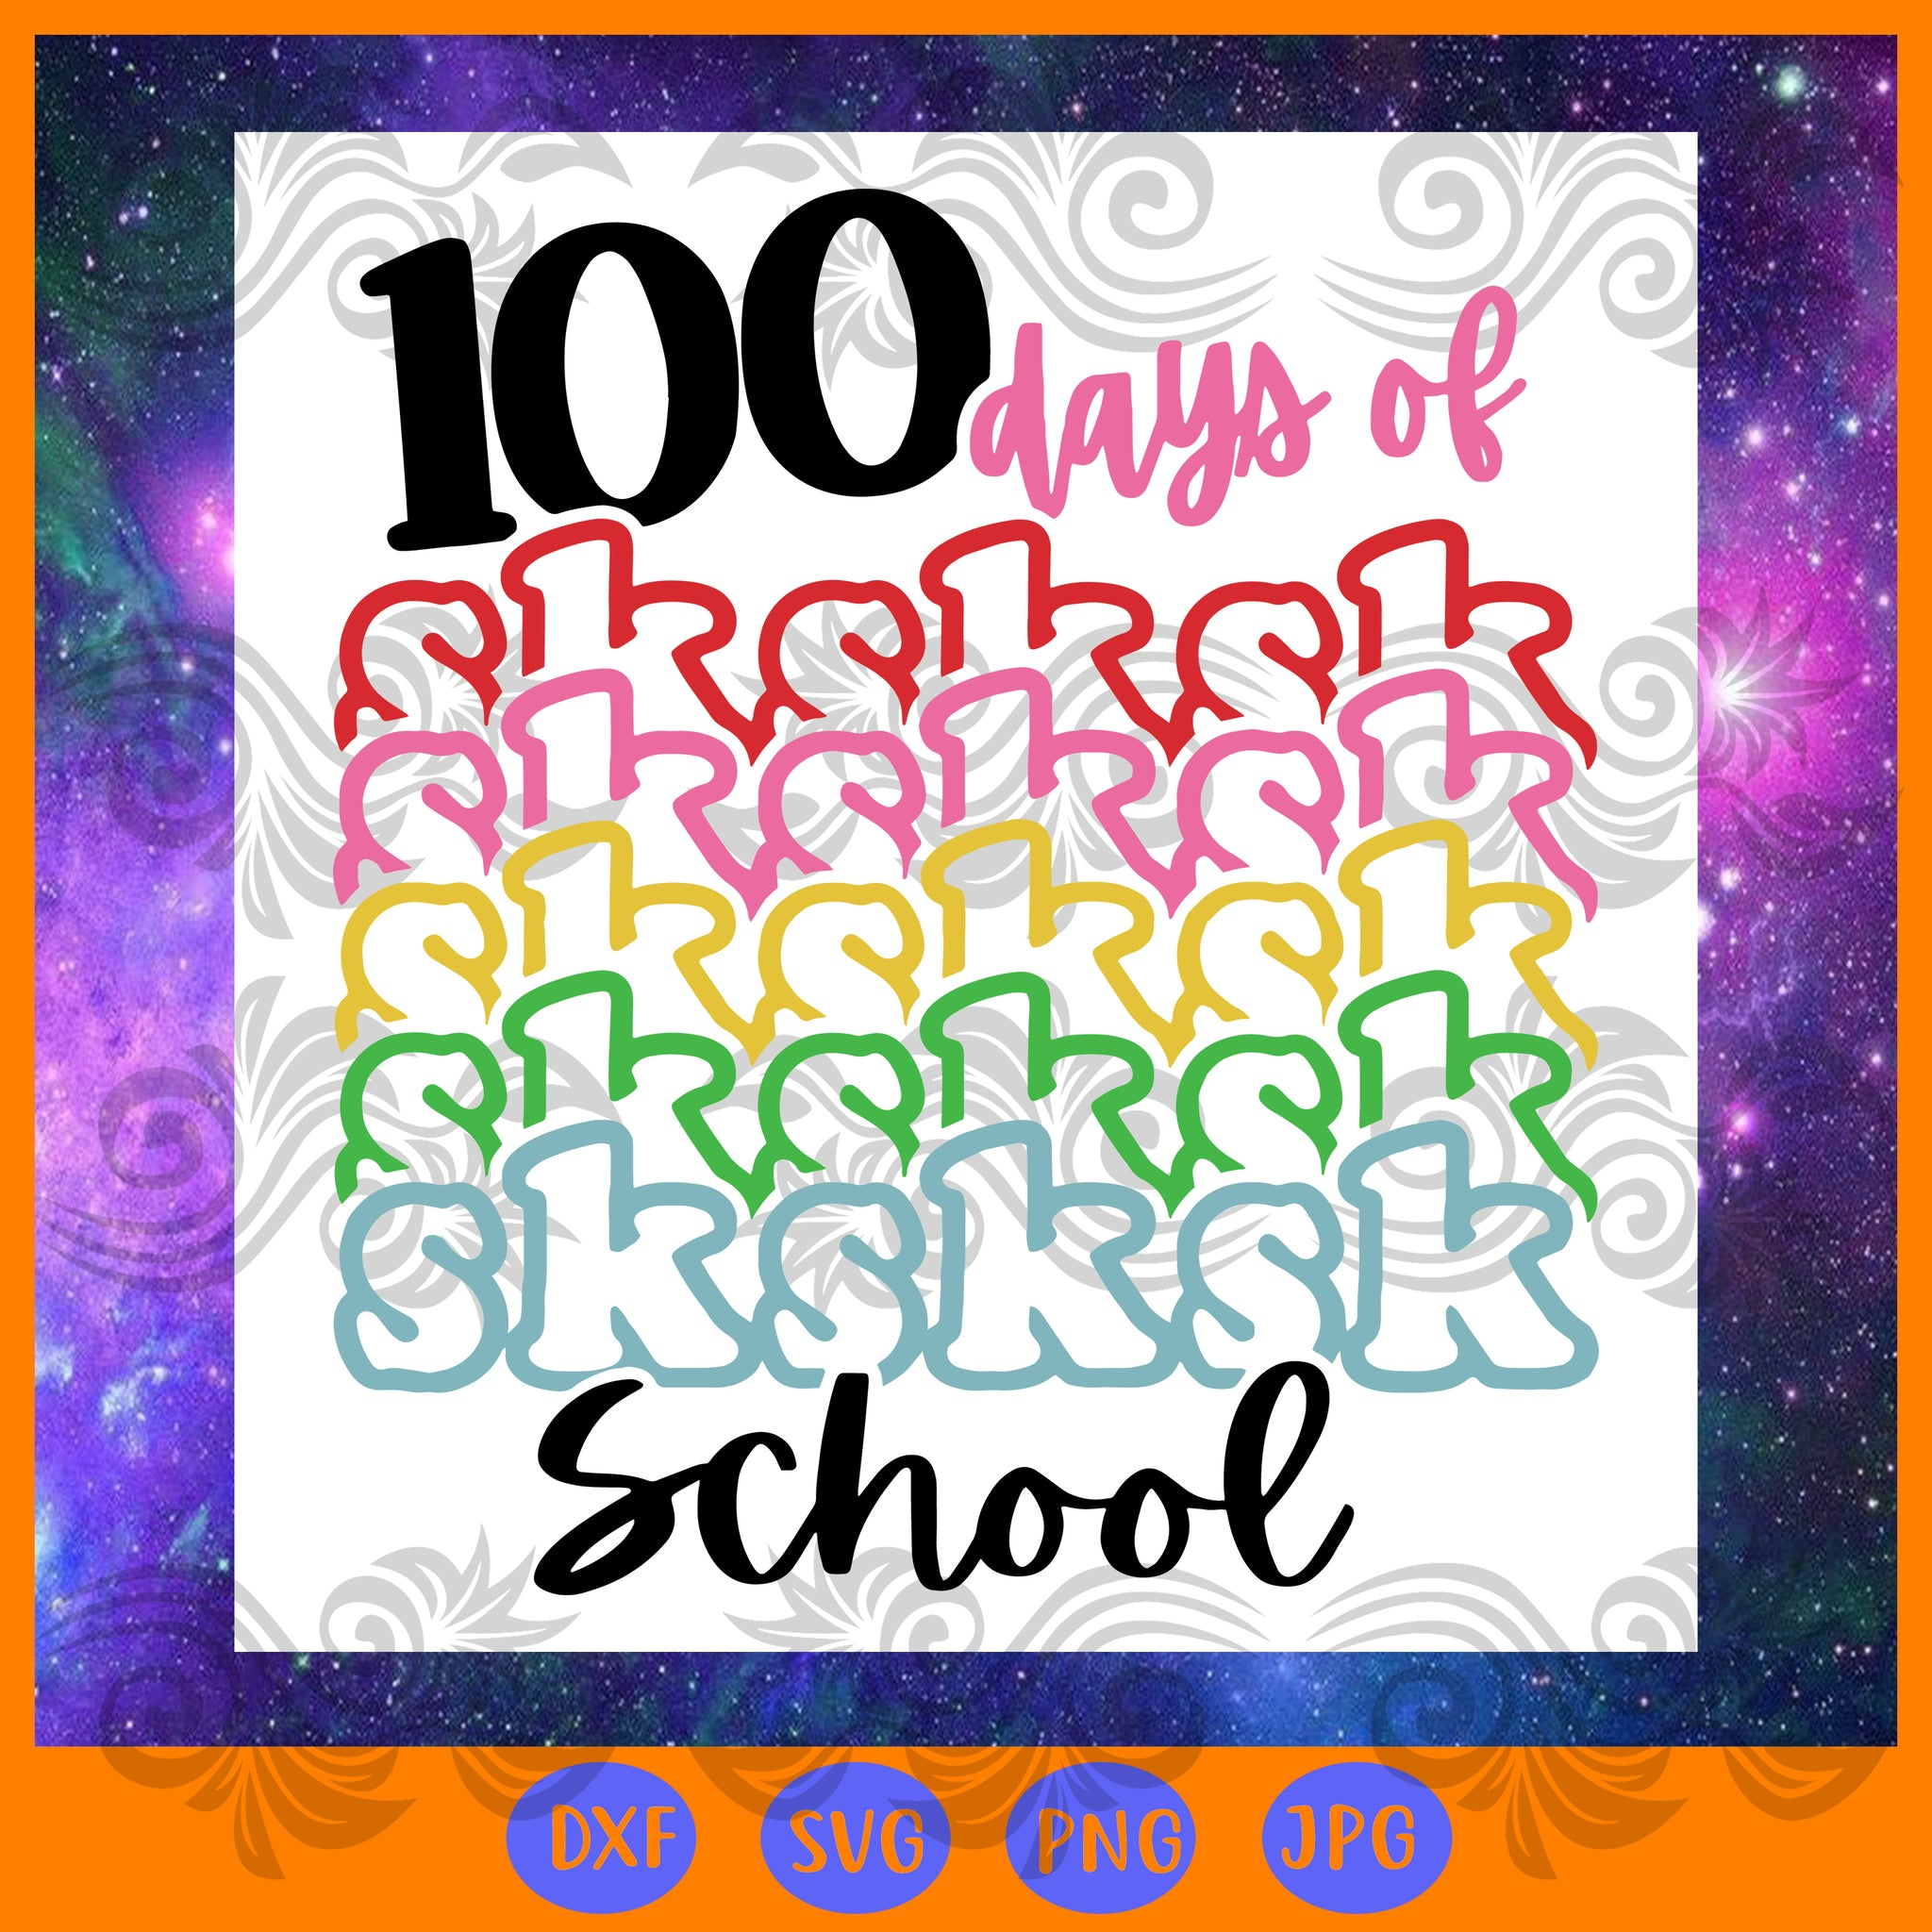 100 days of sksksk school, JPG, PNG, DXF, SVG